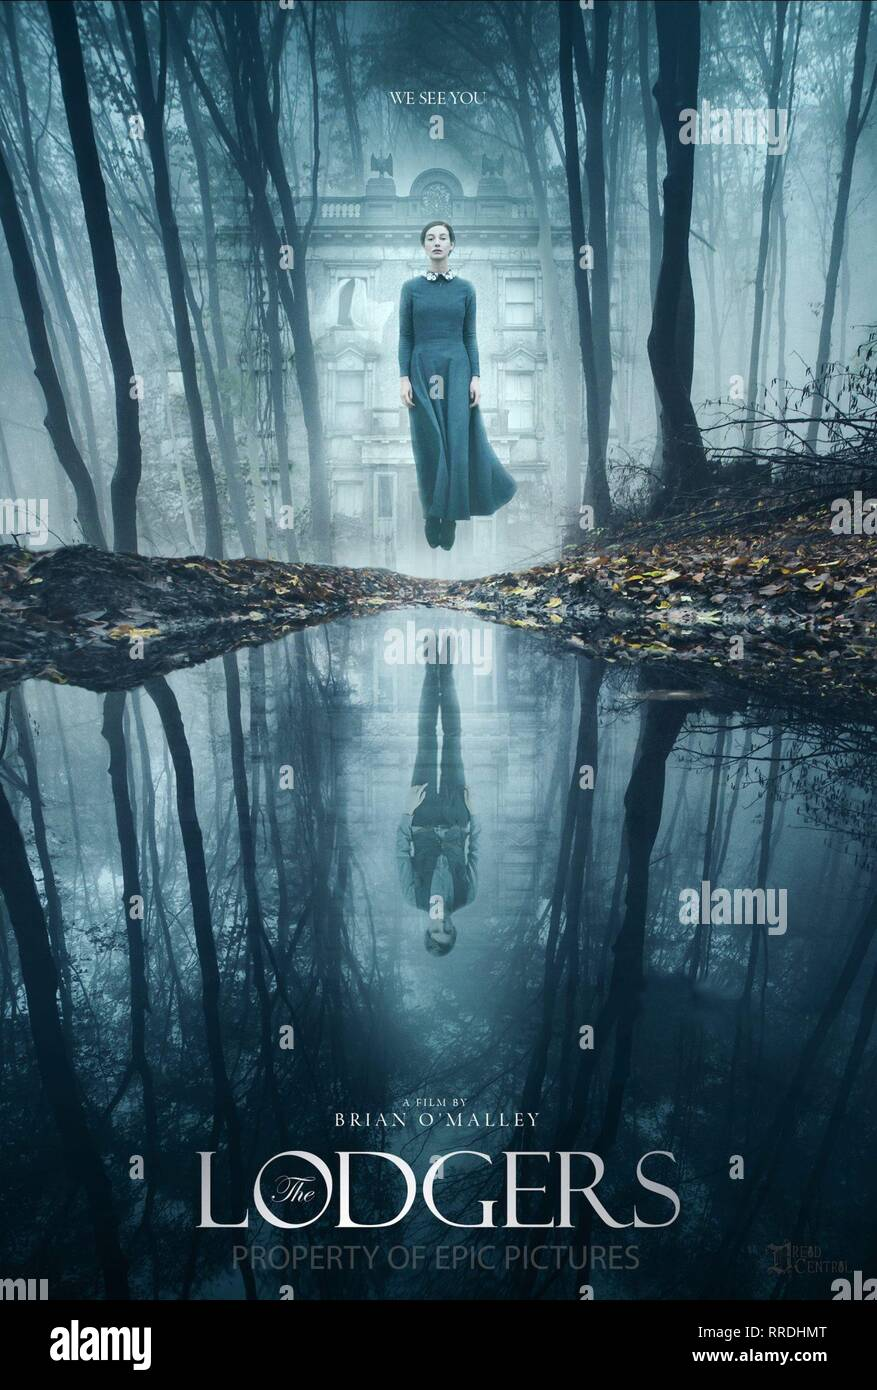 THE LODGERS, MOVIE POSTER, 2017 - Stock Image